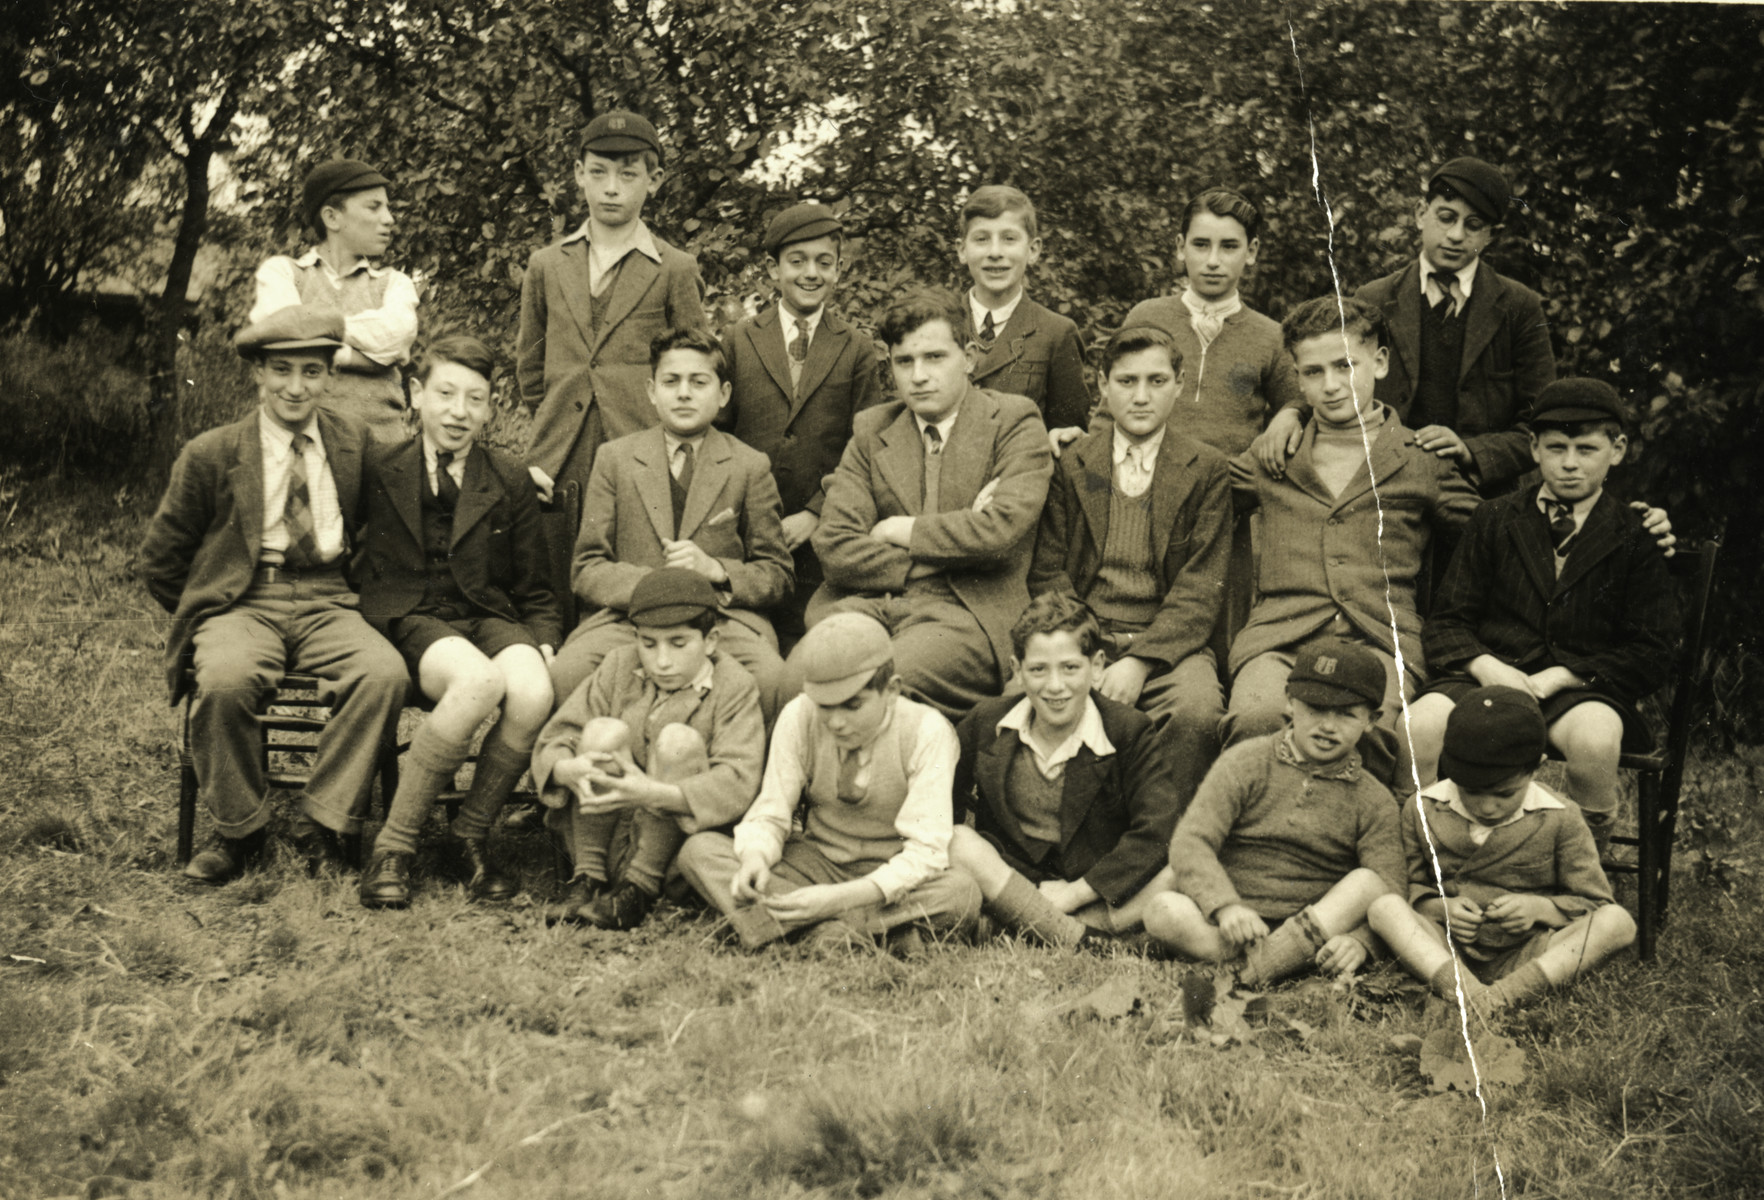 Portrait of school boys in Chase Terrace near Birmingham.  Gus Meyer who had come to England on a Kindertransport is in the middle row third from the right,